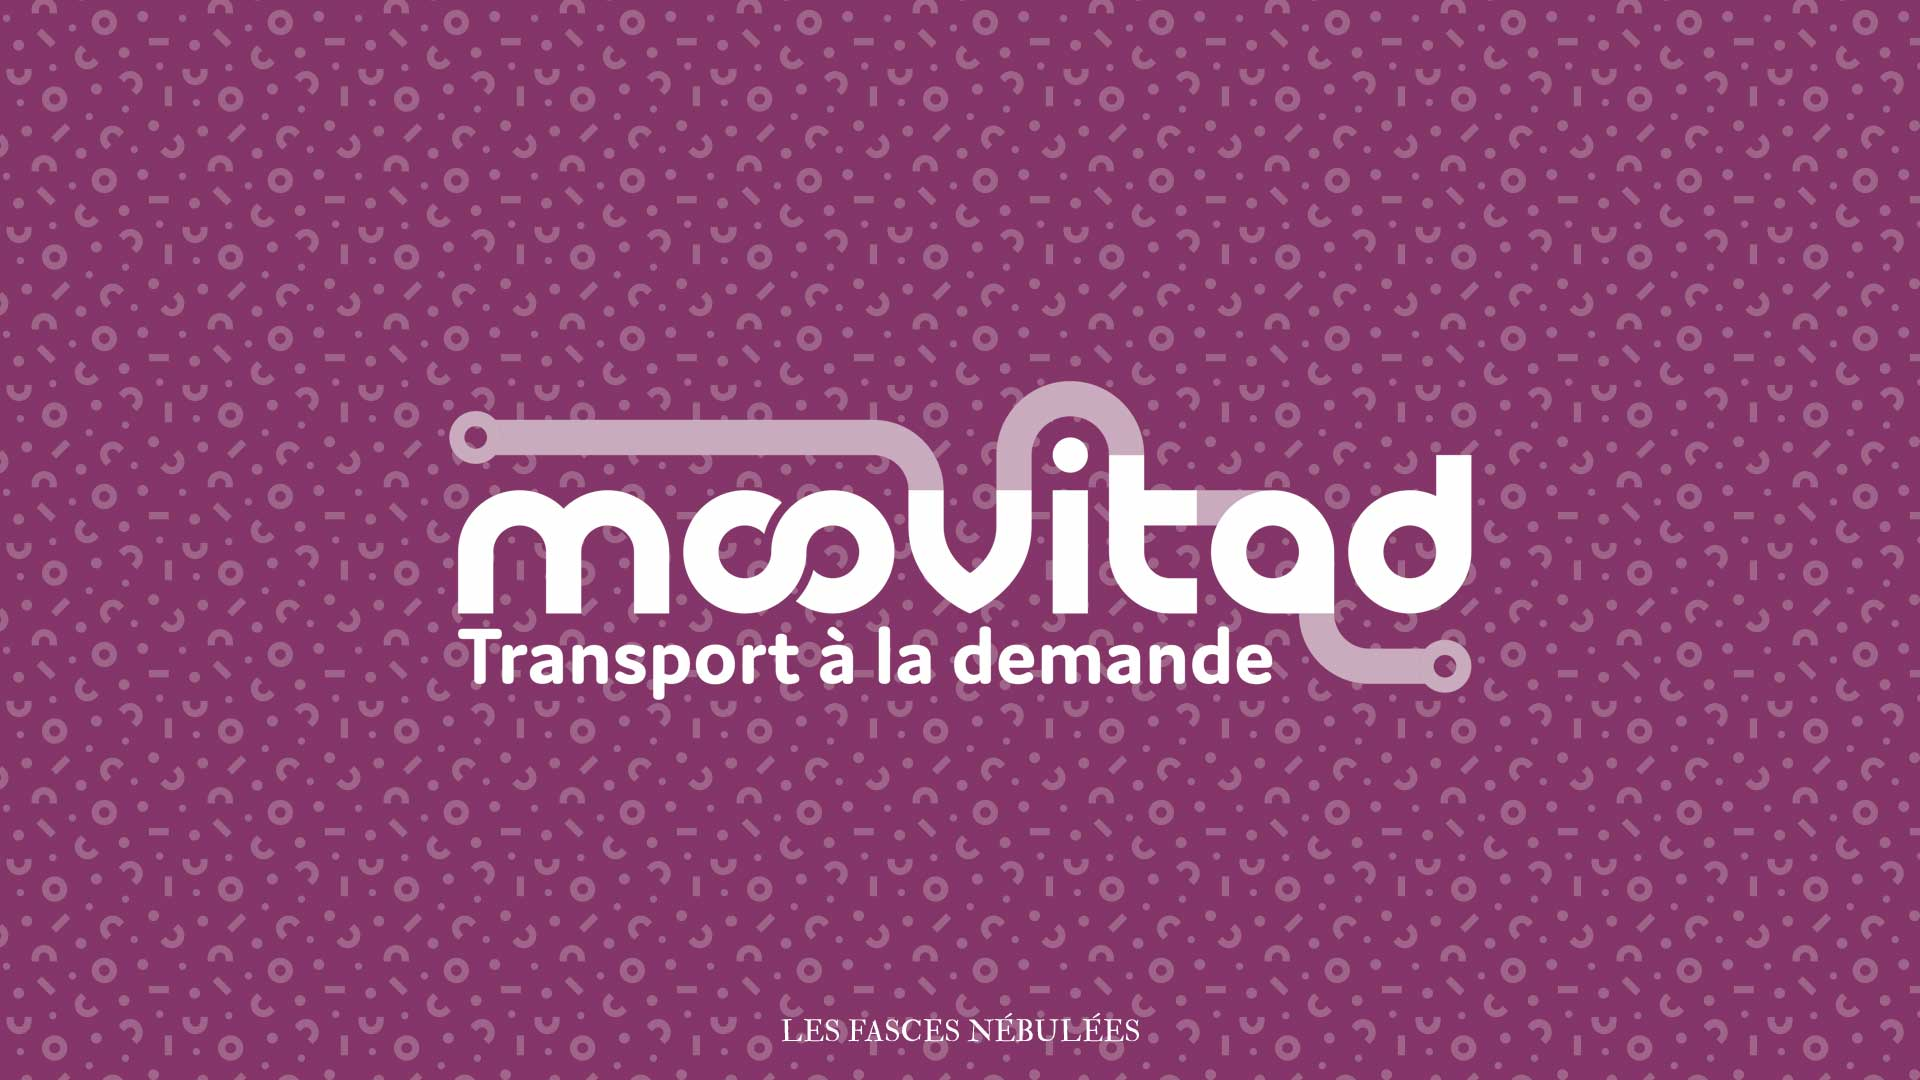 Moovitad</br> Transport à la demande